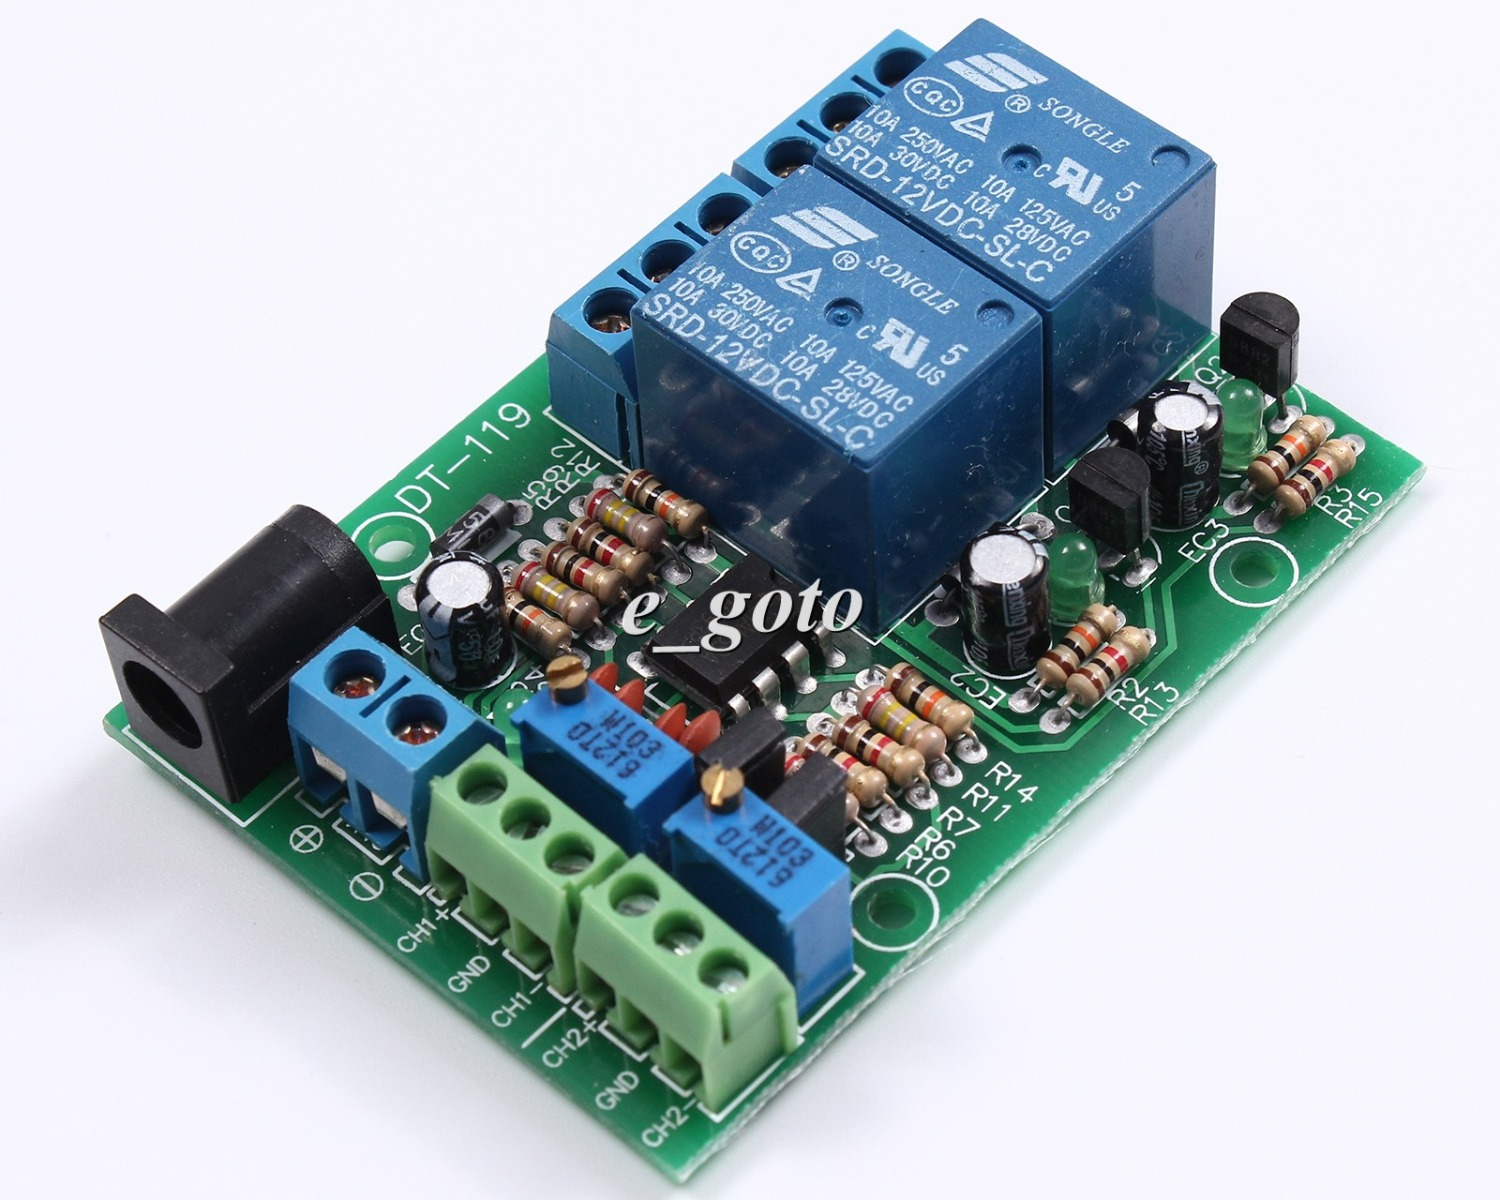 Lm339 Quad Voltage Comparator Circuit Diagram Simple Intercom Transistor